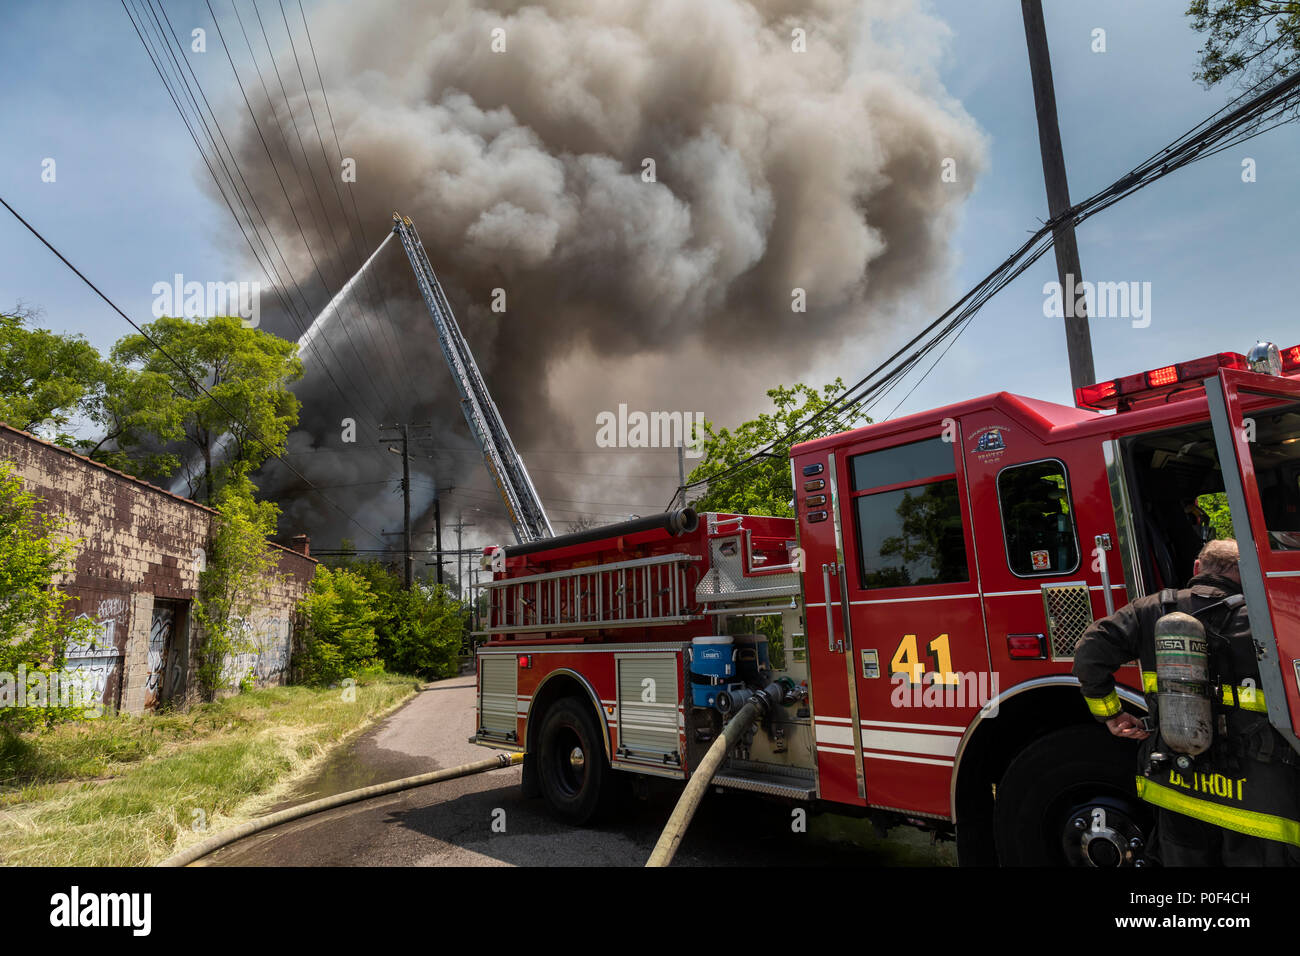 Detroit, Michigan - Firefighters at a building fire on Detroit's east side. - Stock Image